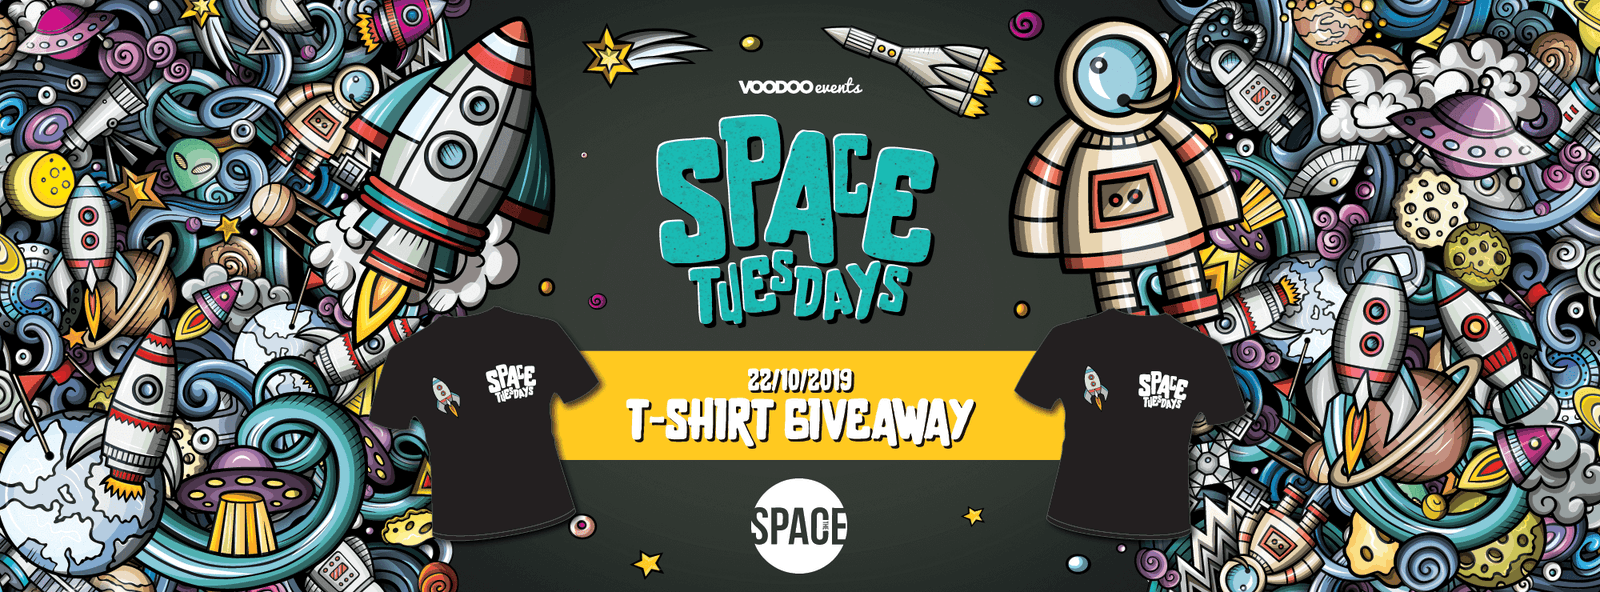 Space Tuesdays : Leeds – T Shirt Giveaway